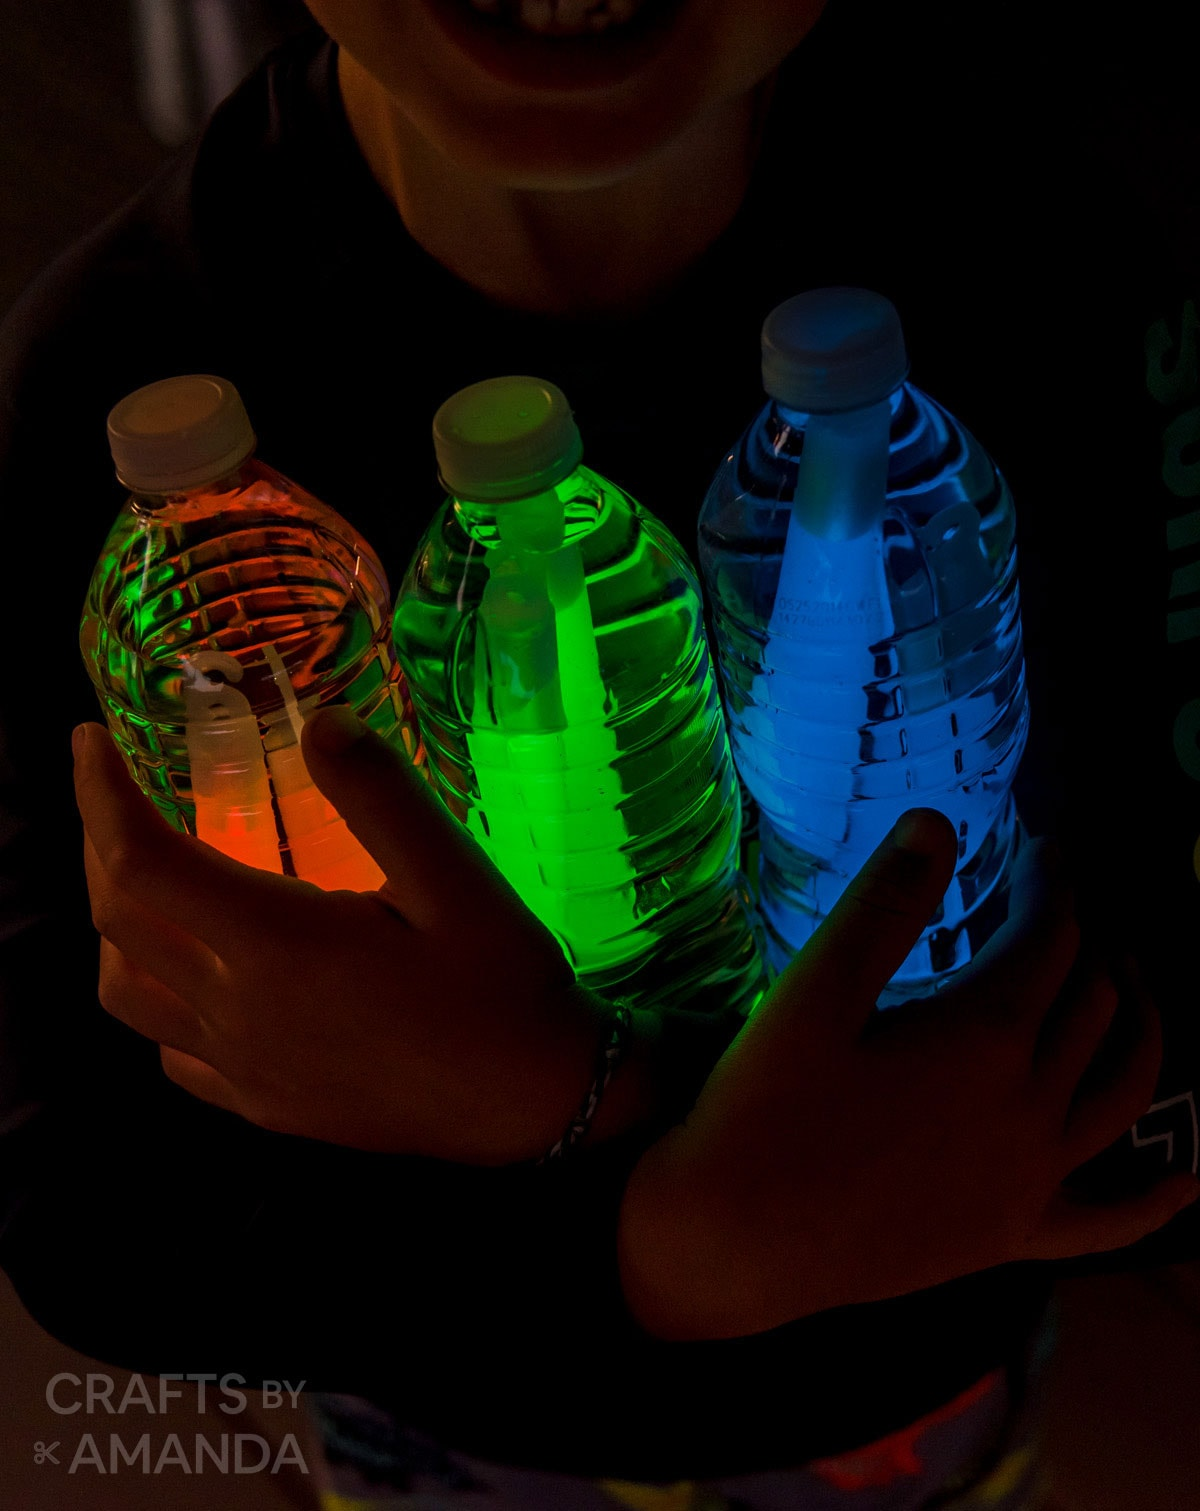 boy holding water bottles with glow sticks in them